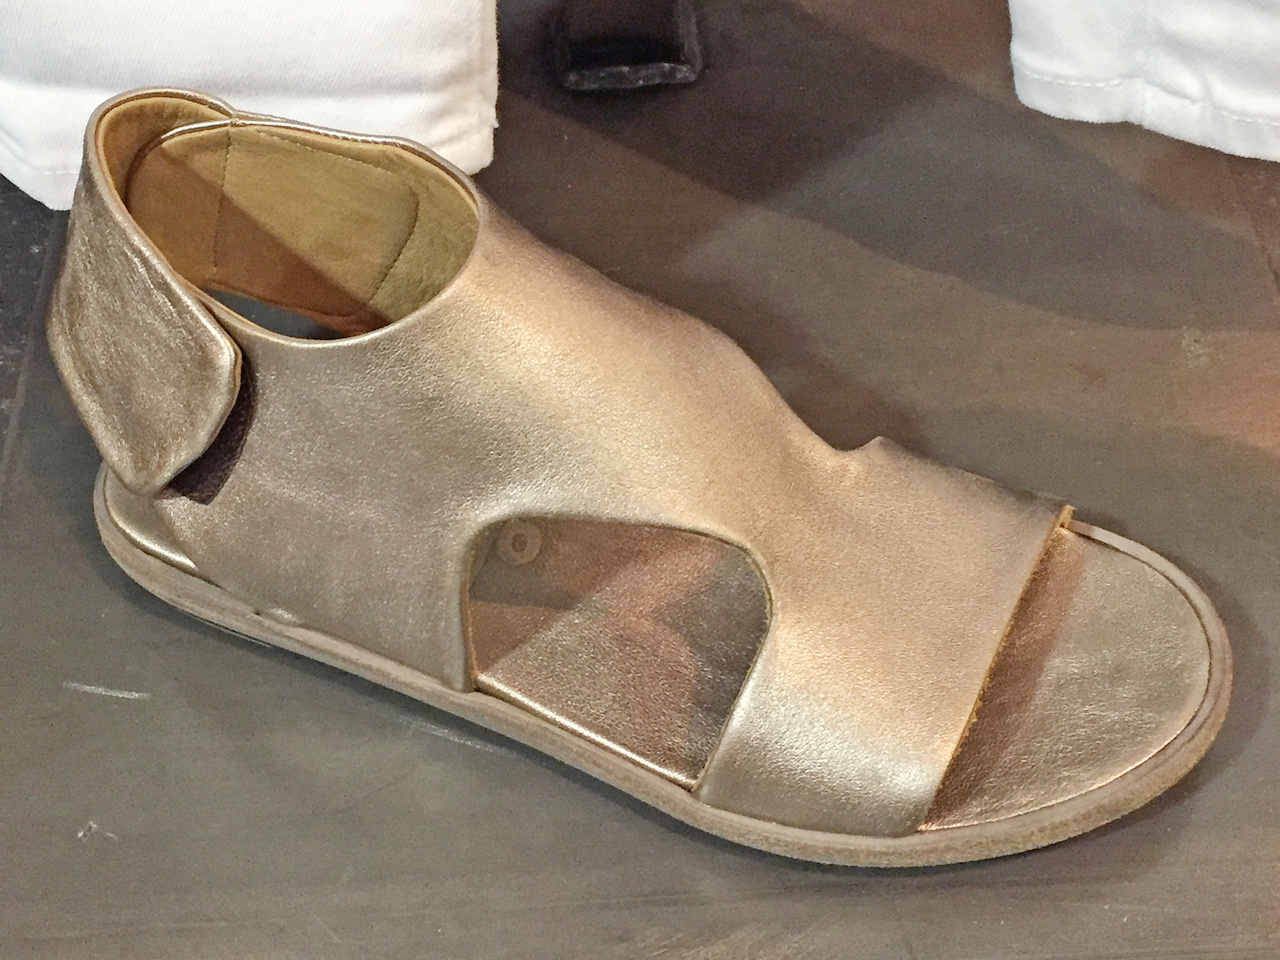 From Betsy Prince: P. Monjo metallic t-strap leather sandal, $398